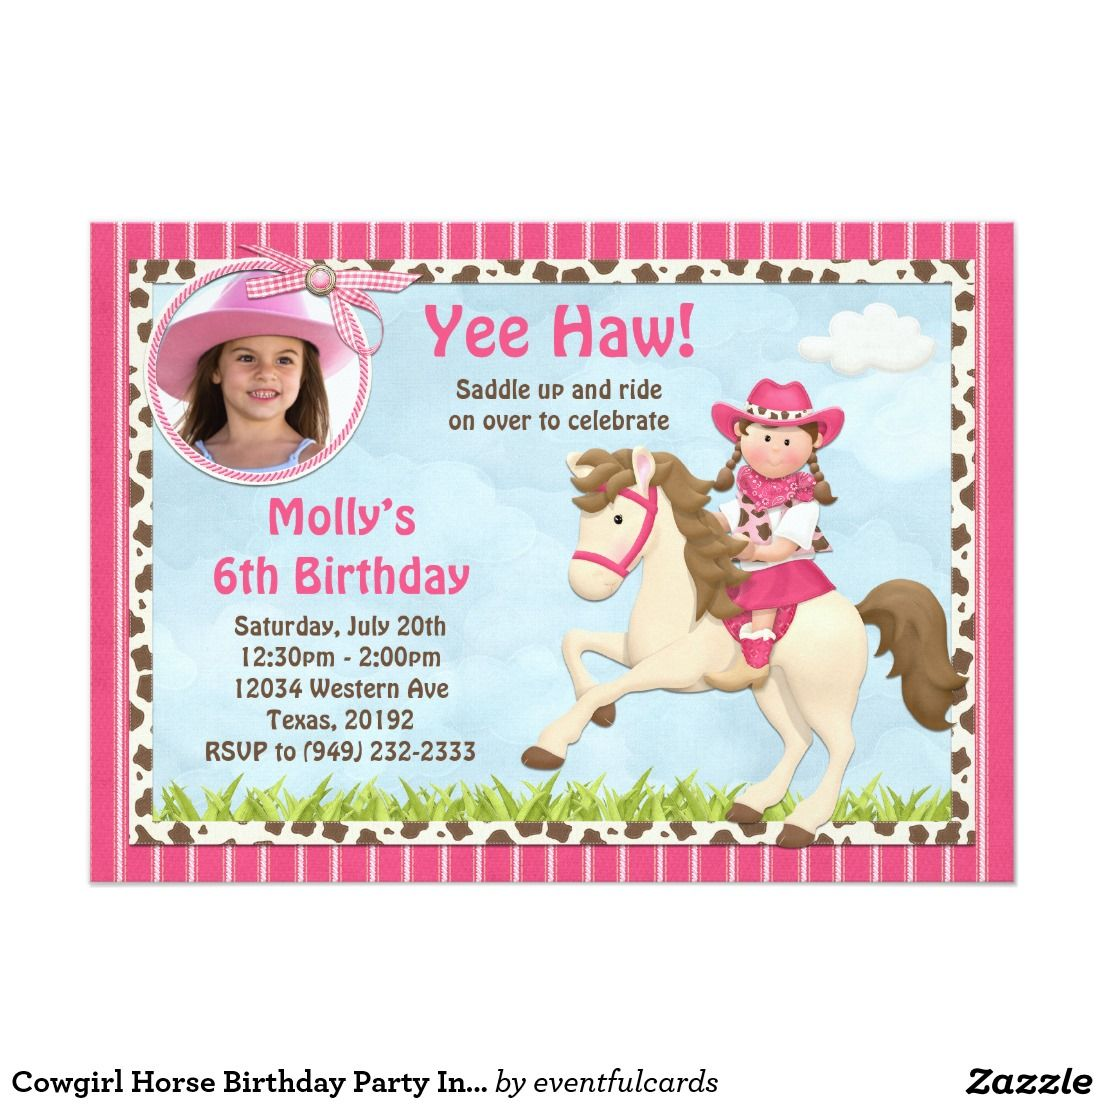 cowgirl horse birthday party invitation 5 x 7 invitation card - Horse Party Invitations